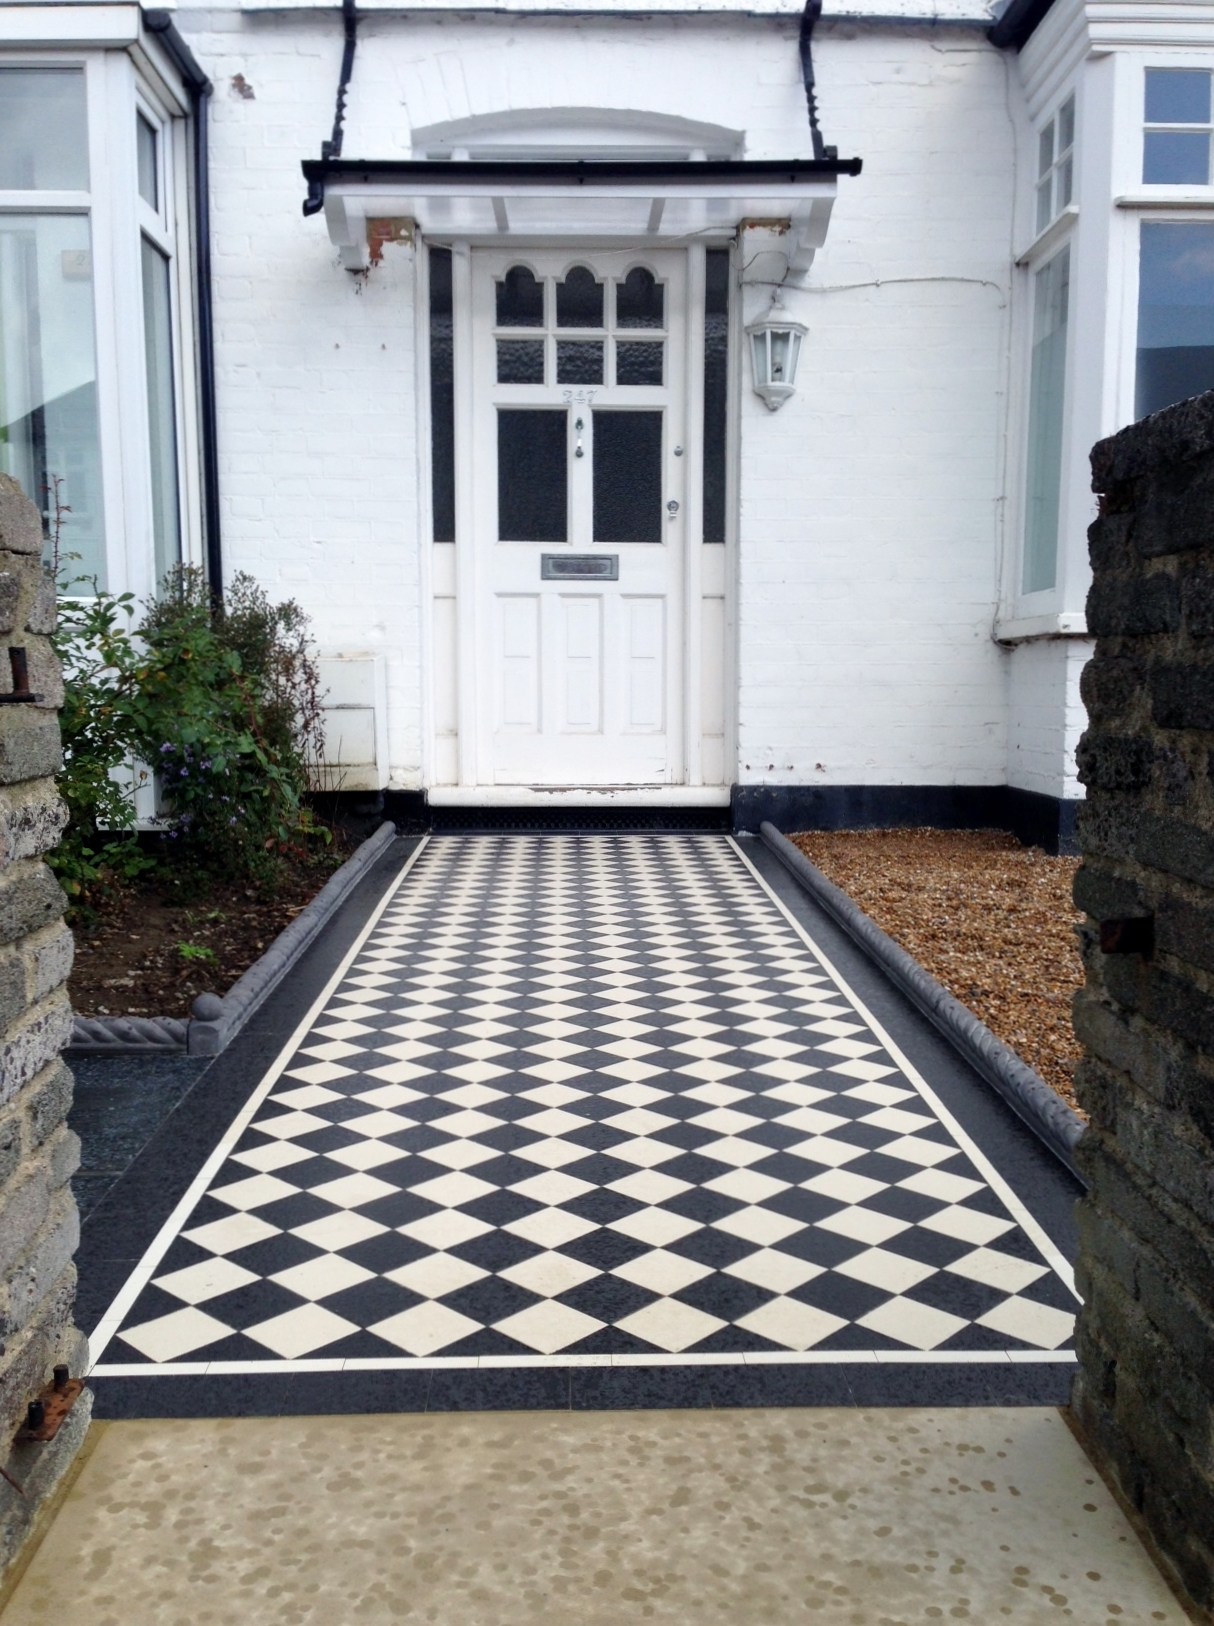 Victorian black and white mosaic tile garden path rope edge tile brockley lea catford london (7)